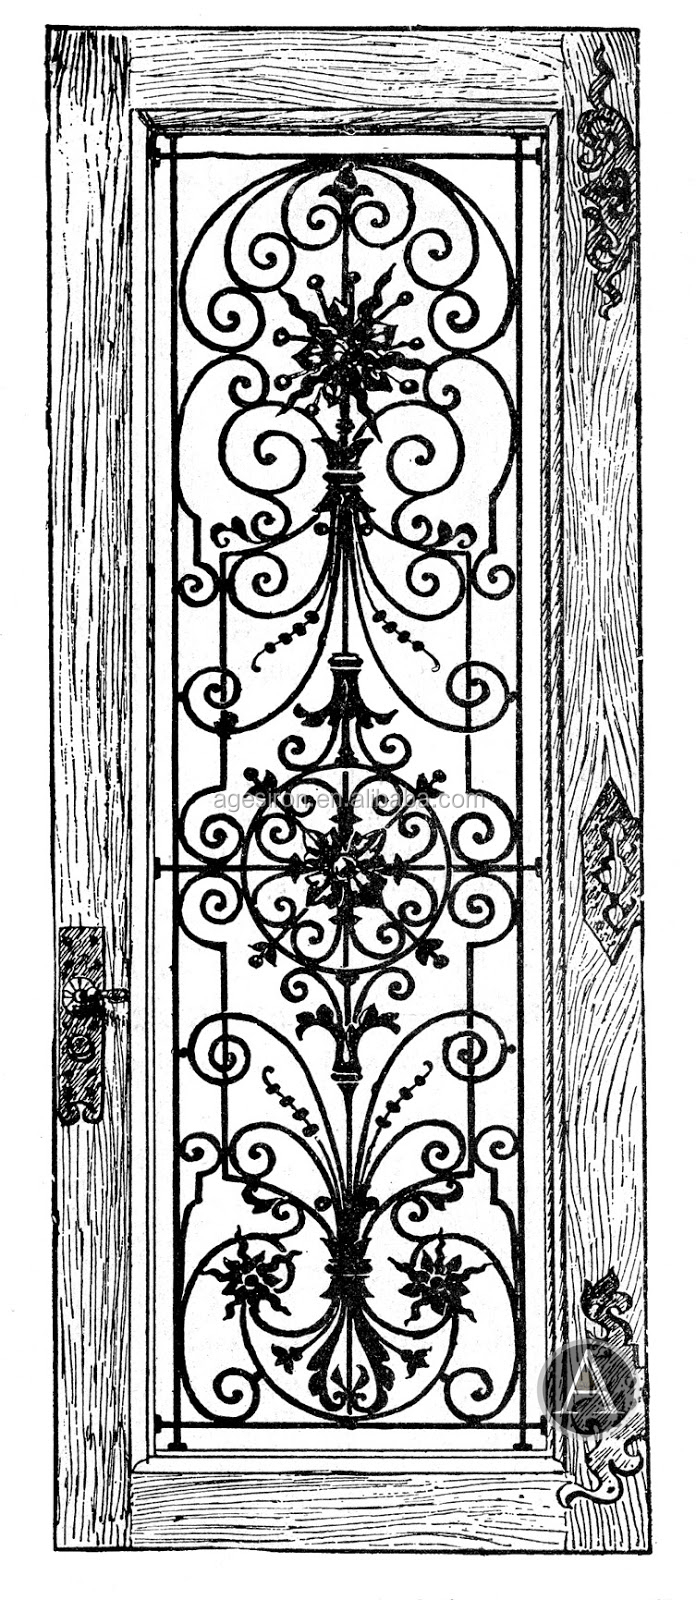 House Gate Grill Designs House Gate Grill Designs Suppliers And - House design grill